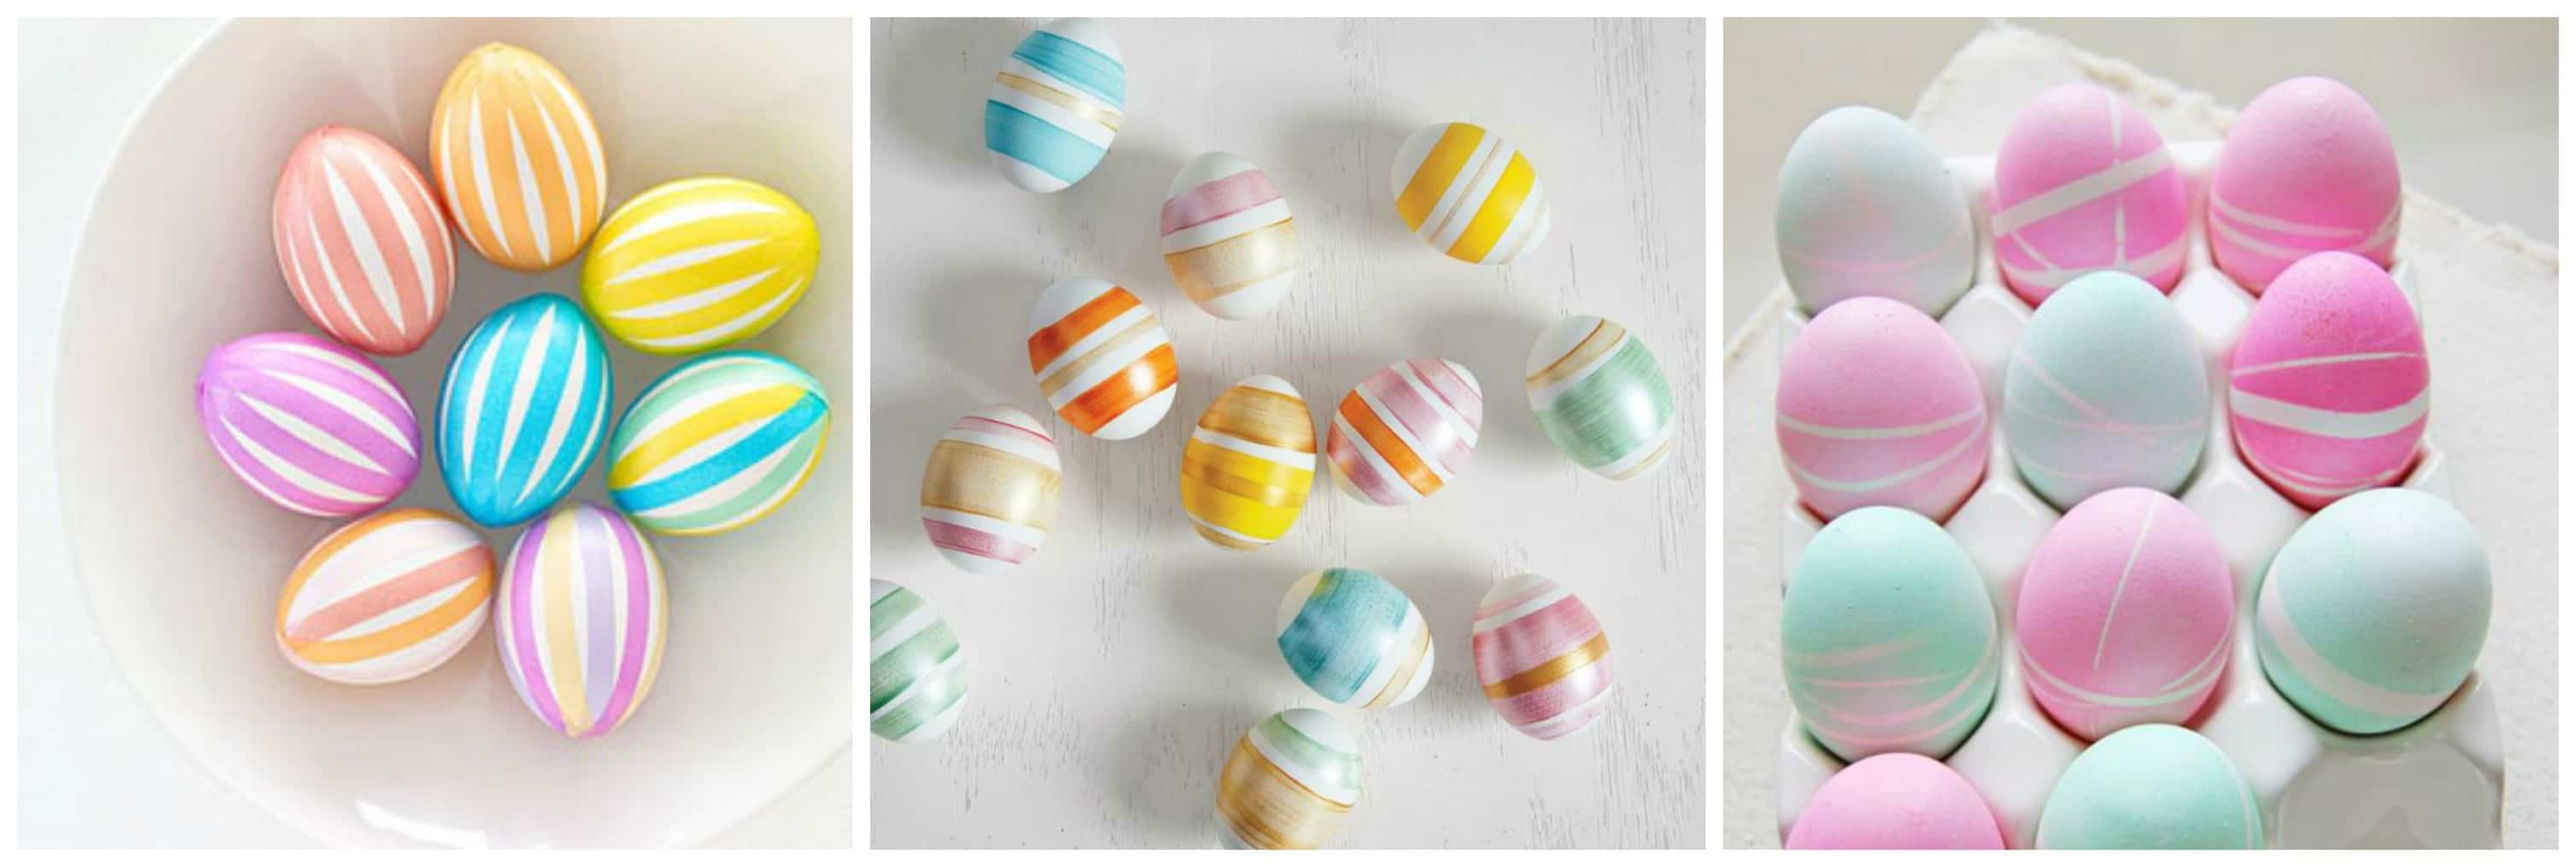 STRIPES DIY 10 MODI PER DECORARE LE UOVA DI PASQUA TUTTOFERRAMENTA.IT